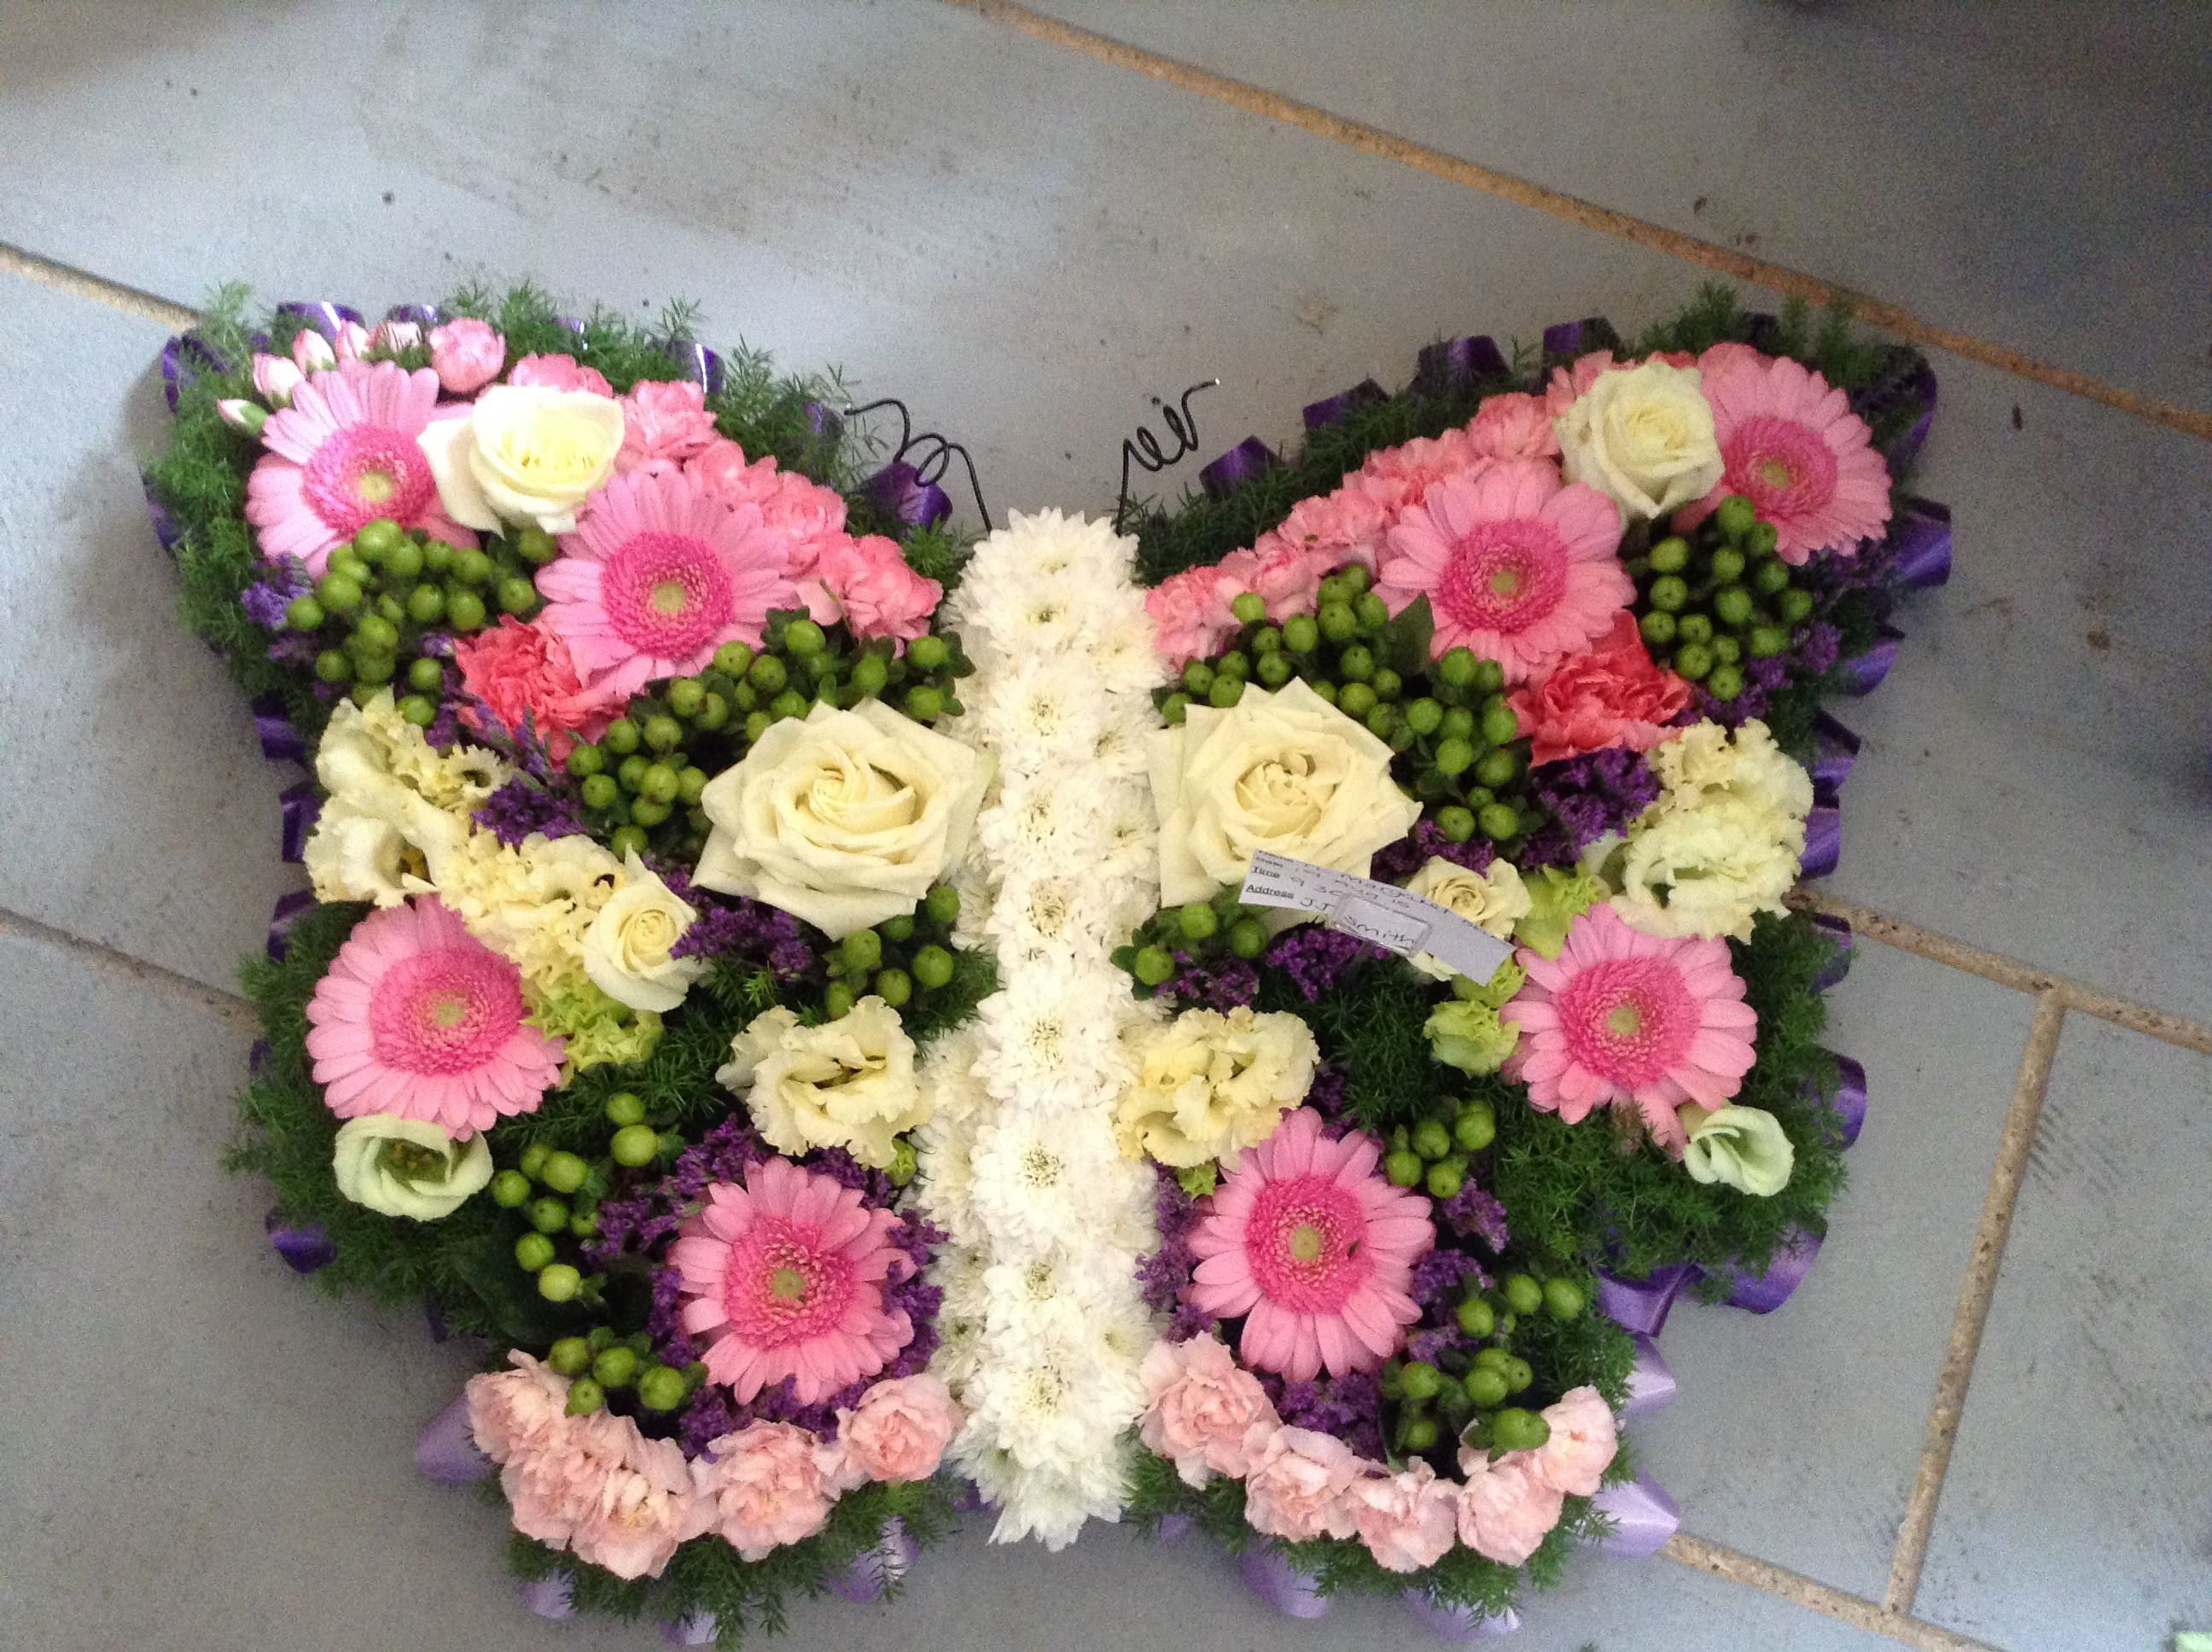 Funeral flowers pink butterfly funeral flower tribute bespoke funeral flowers pink butterfly funeral flower tribute bespoke funeral flowers unusual funeral flowers dhlflorist Image collections